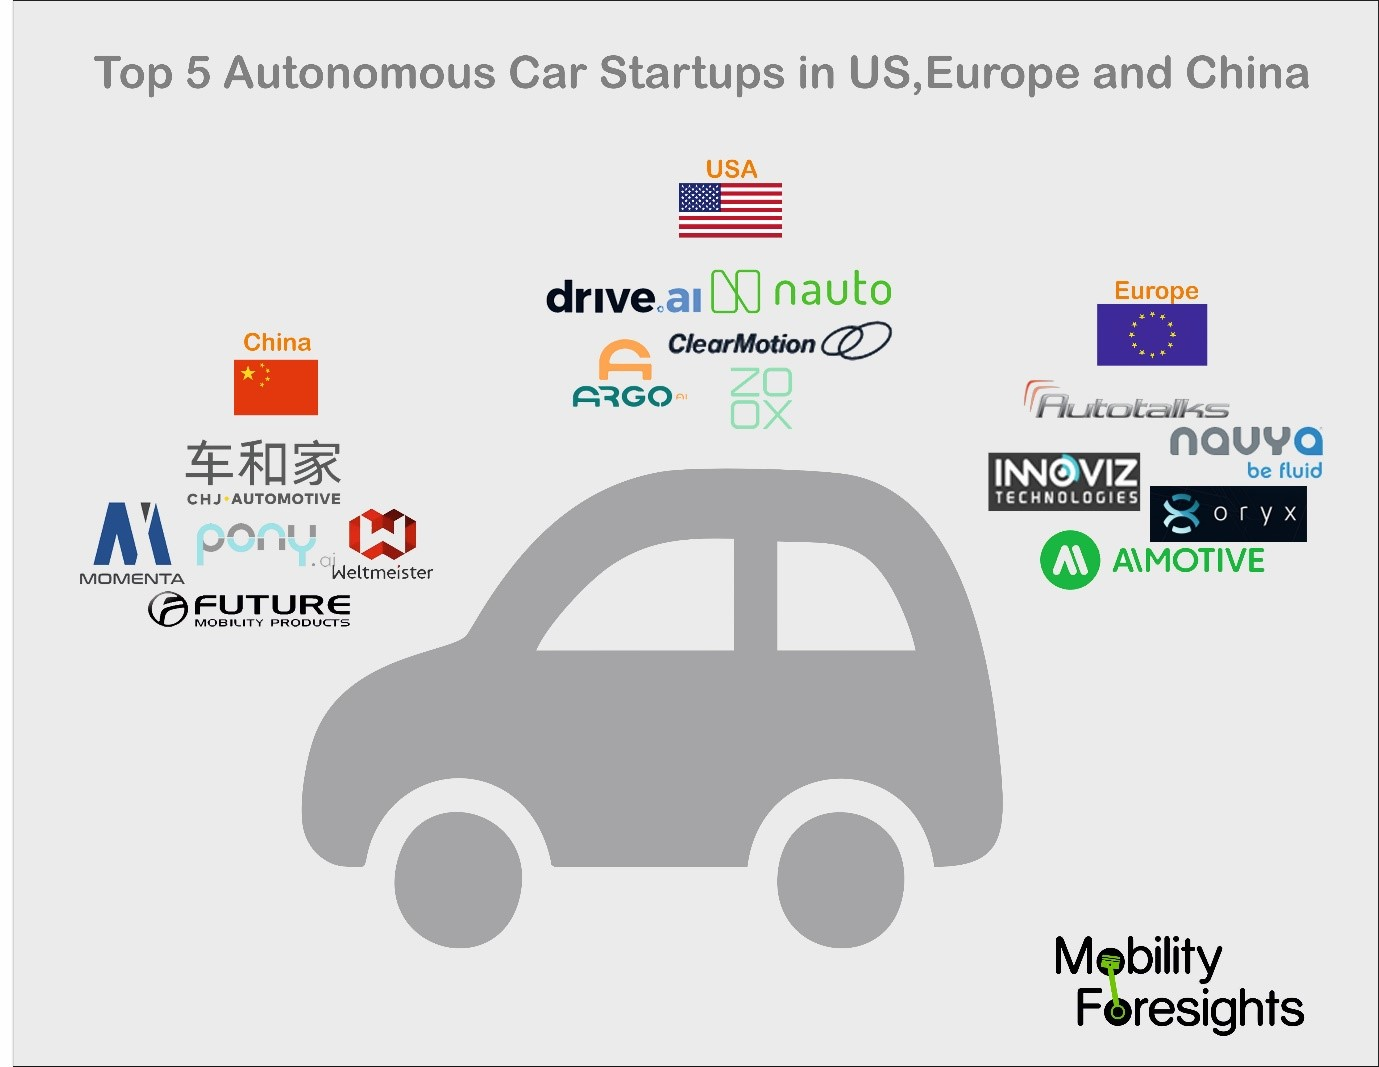 which are the top 5 self-driving car startups